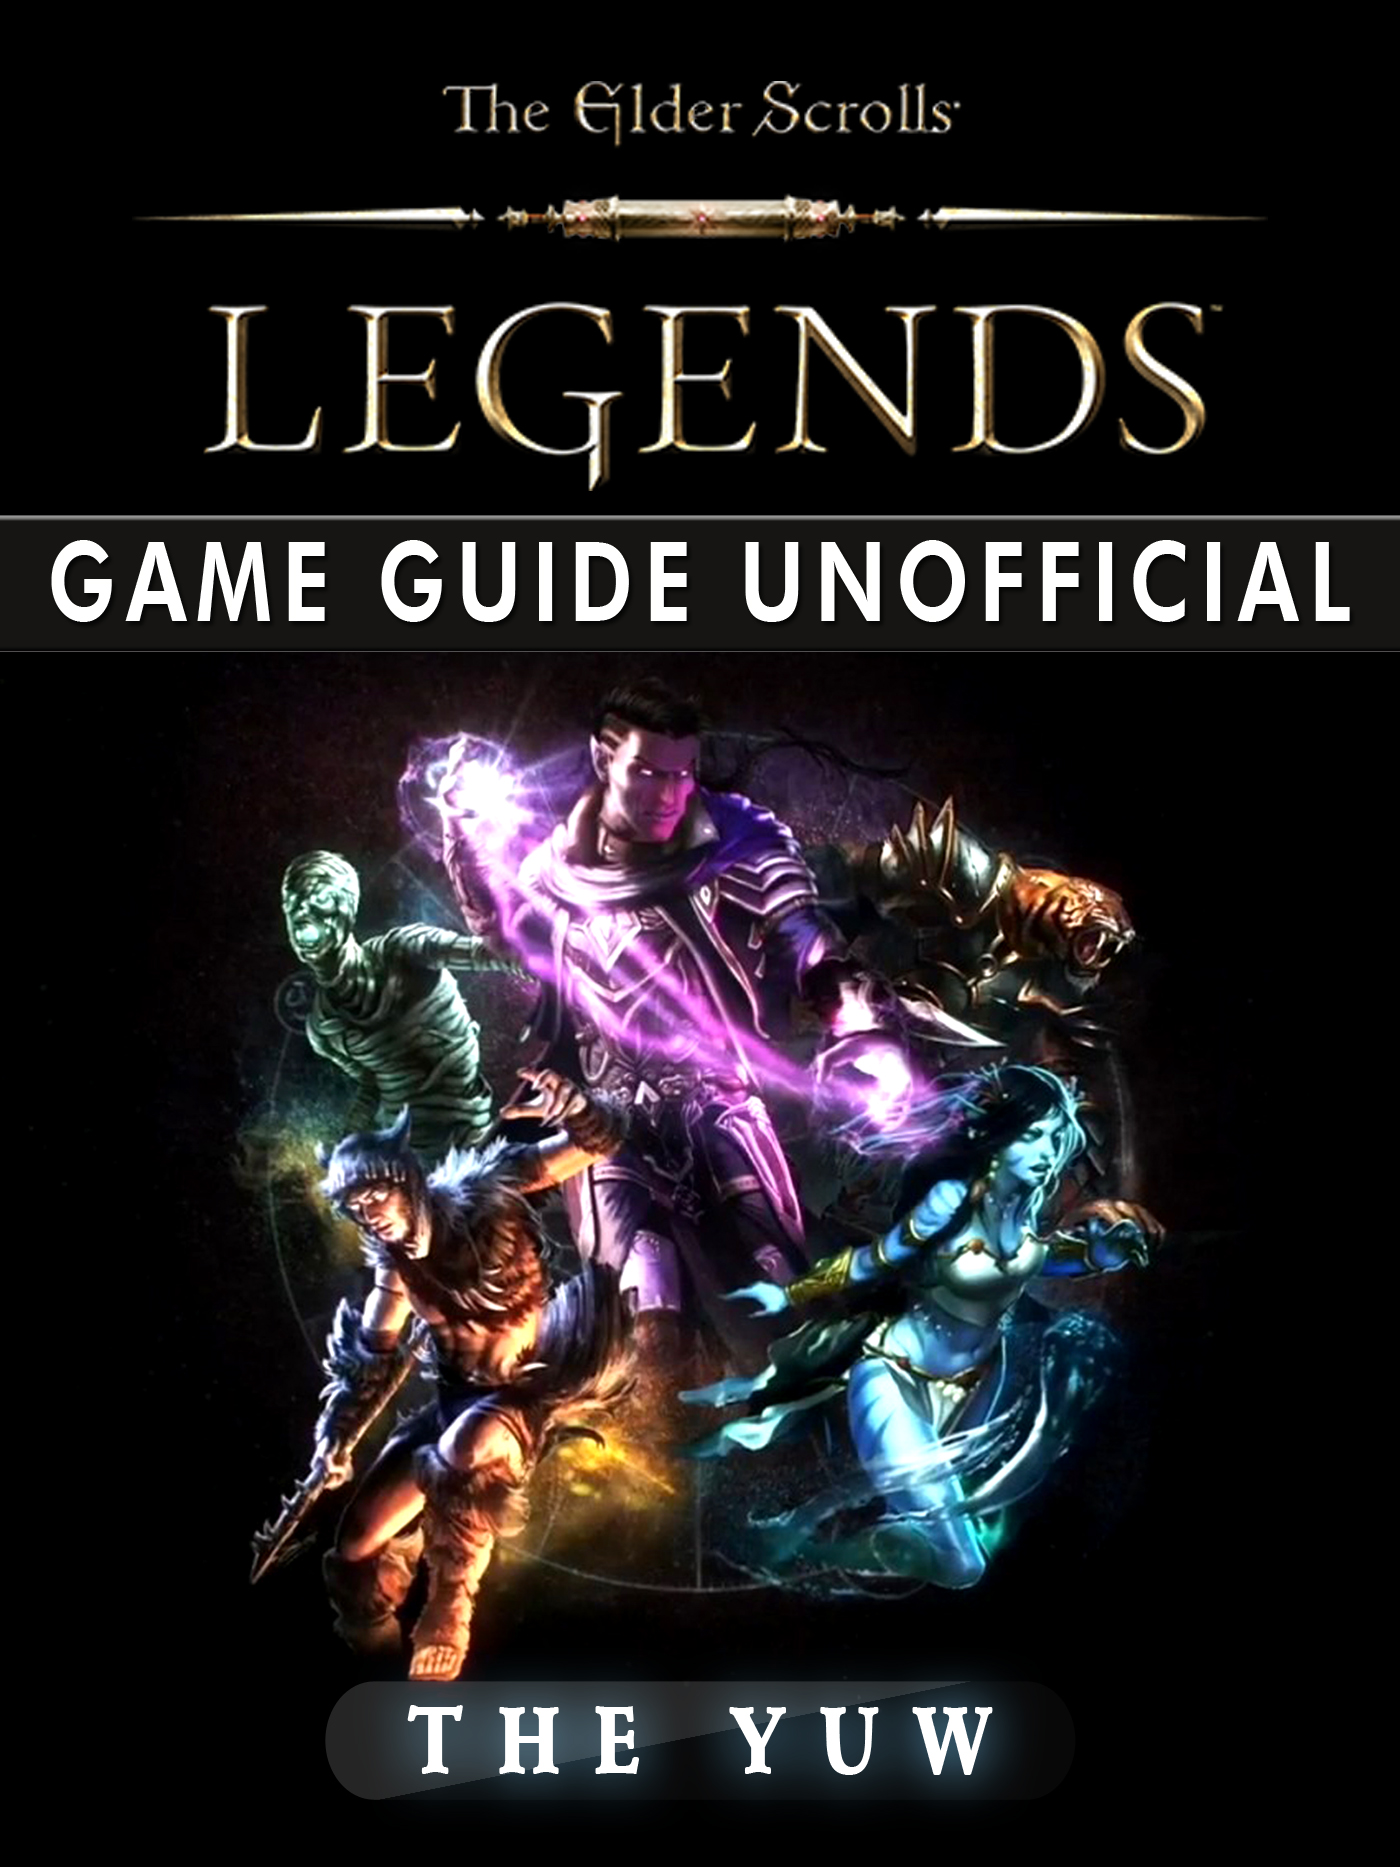 The Elder Scrolls Legends Game Guide Unofficial By The Yuw